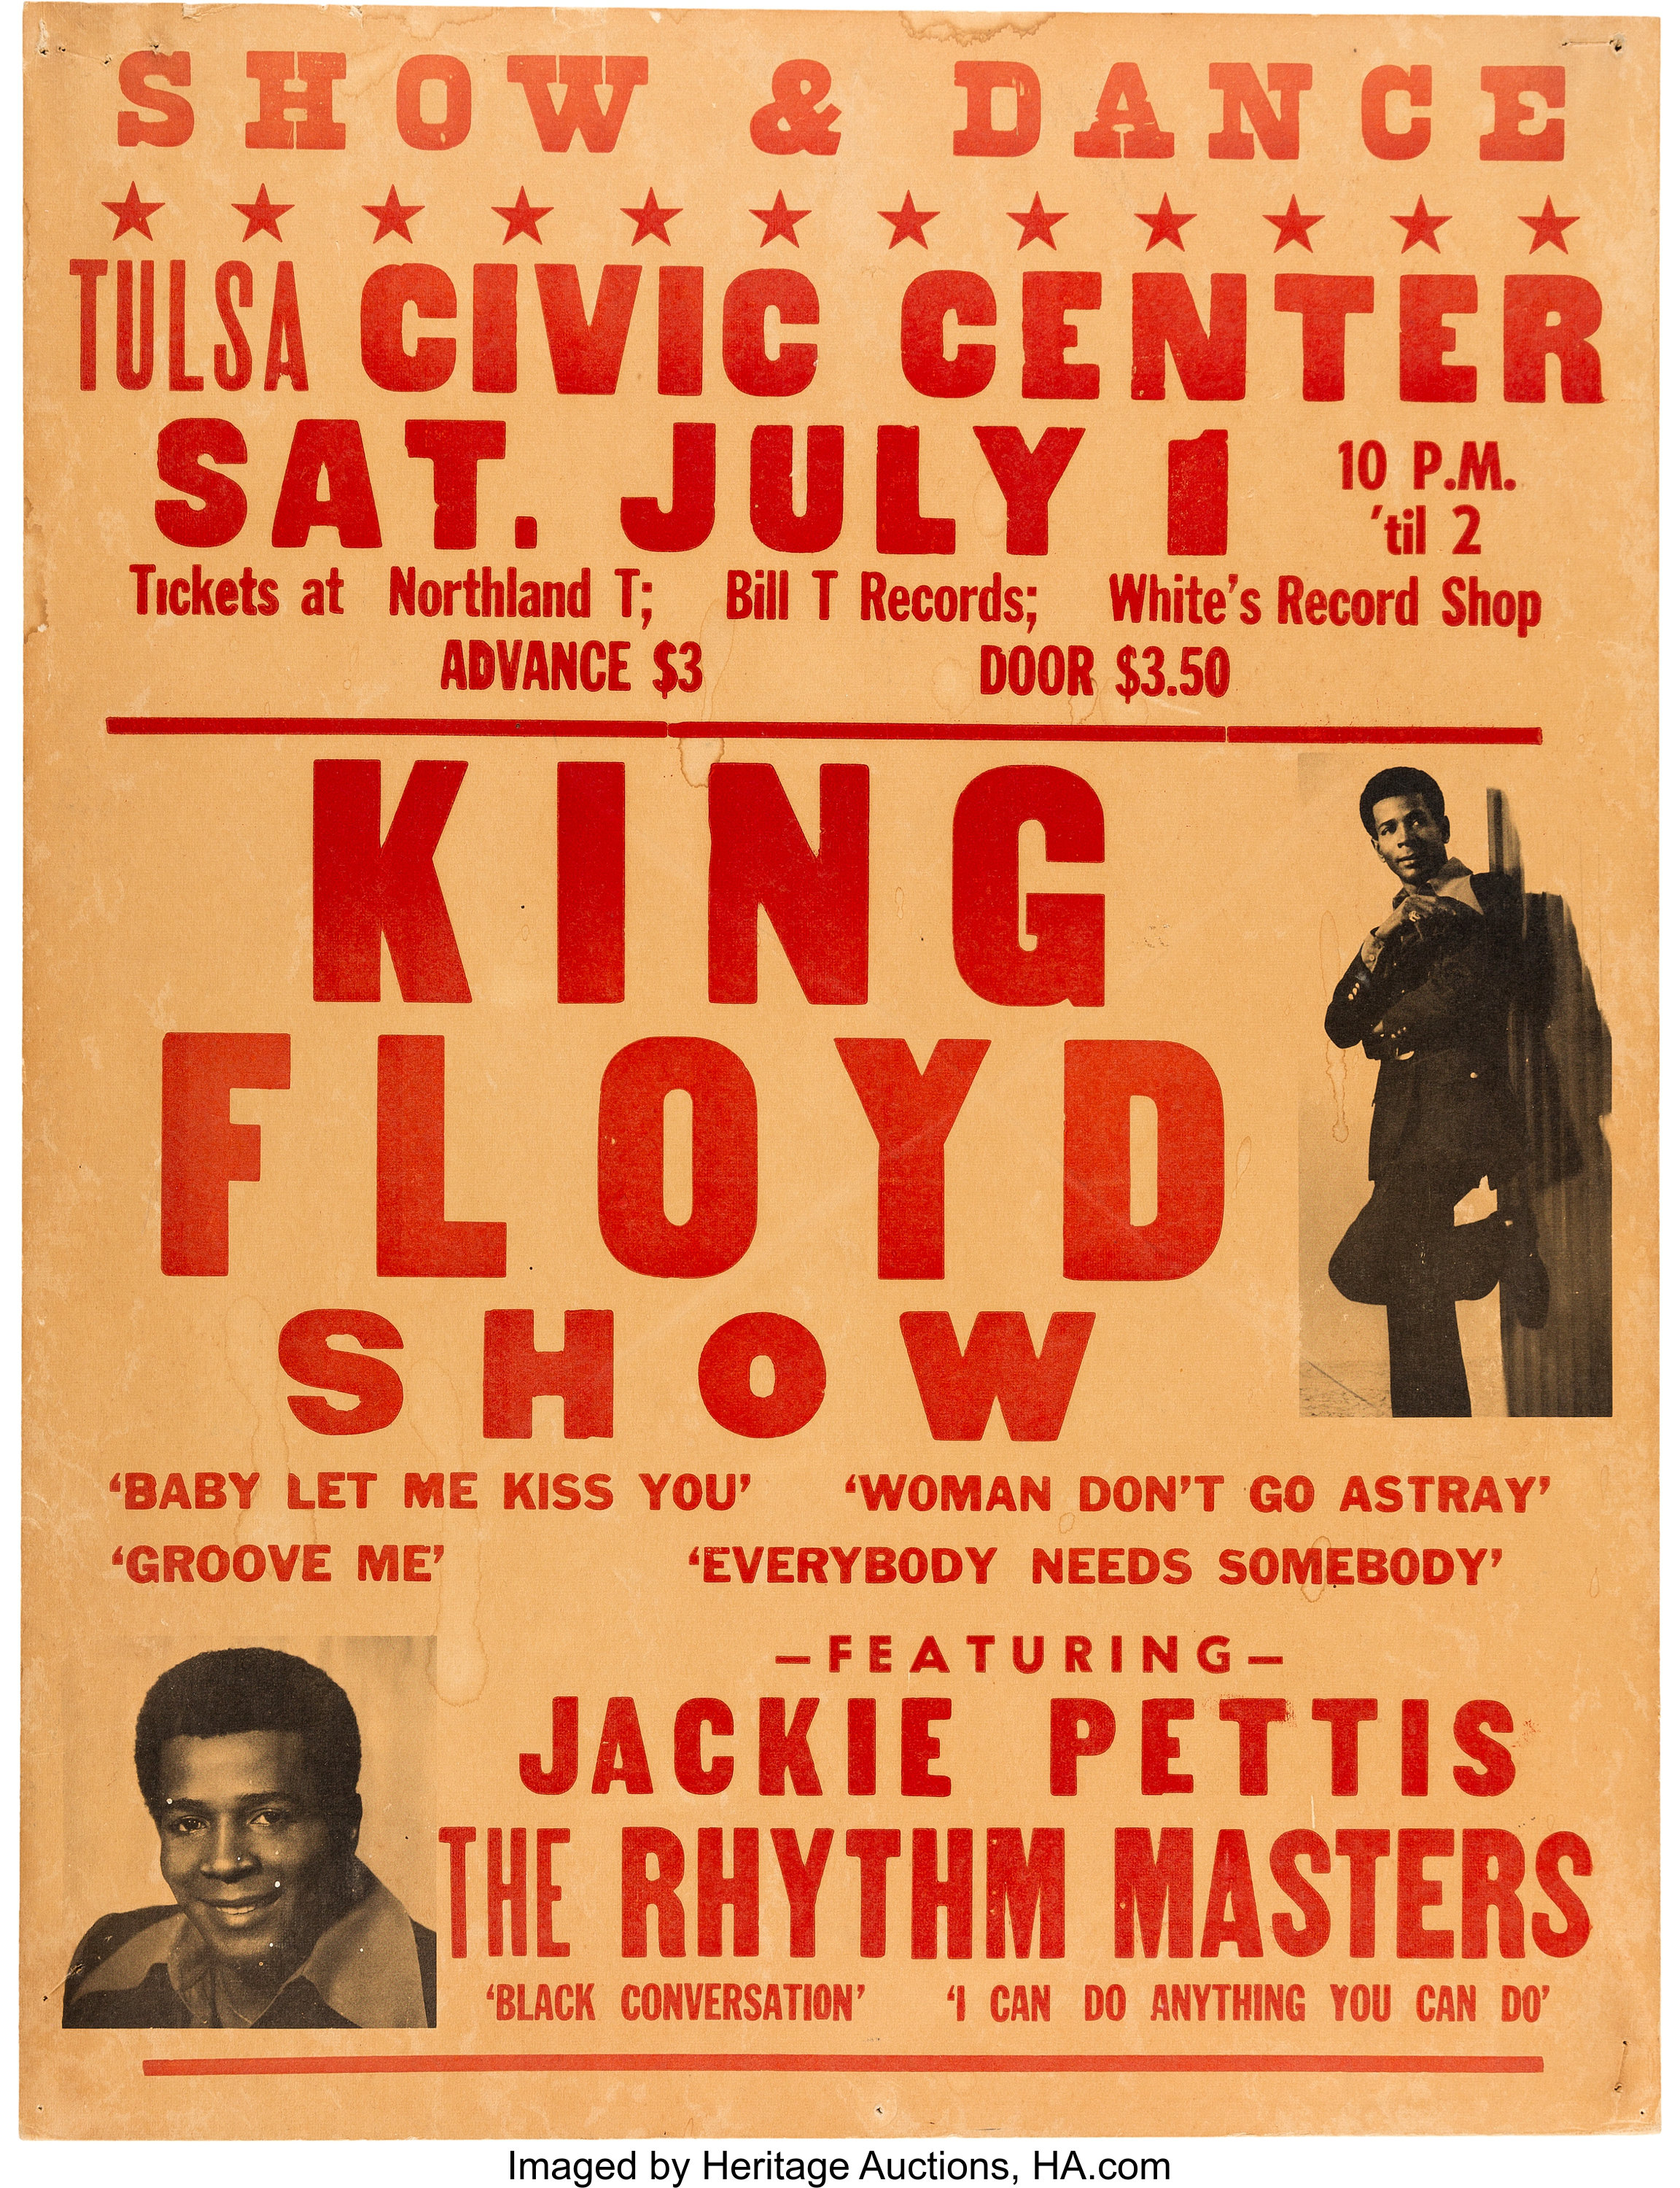 King Floyd Tulsa Civic Center Concert Poster (1970s).... Music | Lot #89620  | Heritage Auctions